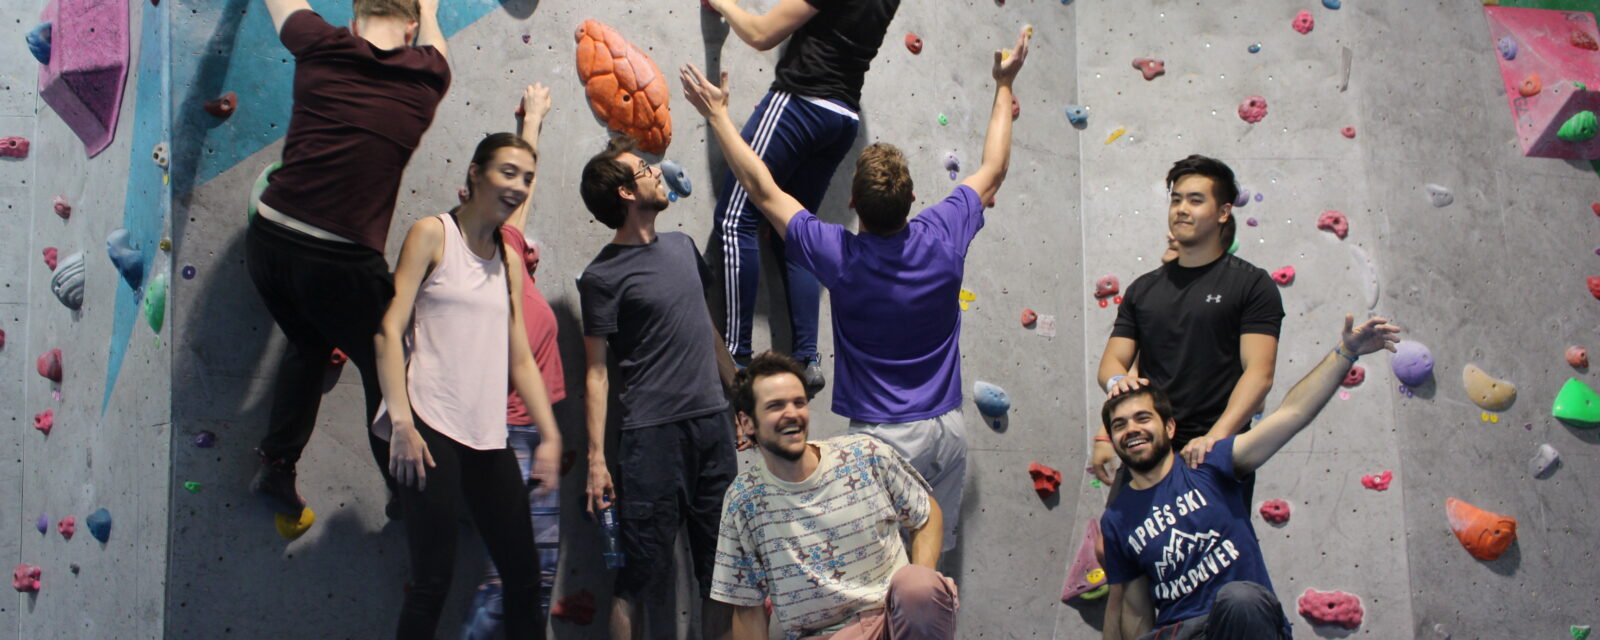 A group of young adults having fun at the City Bloc climbing wall